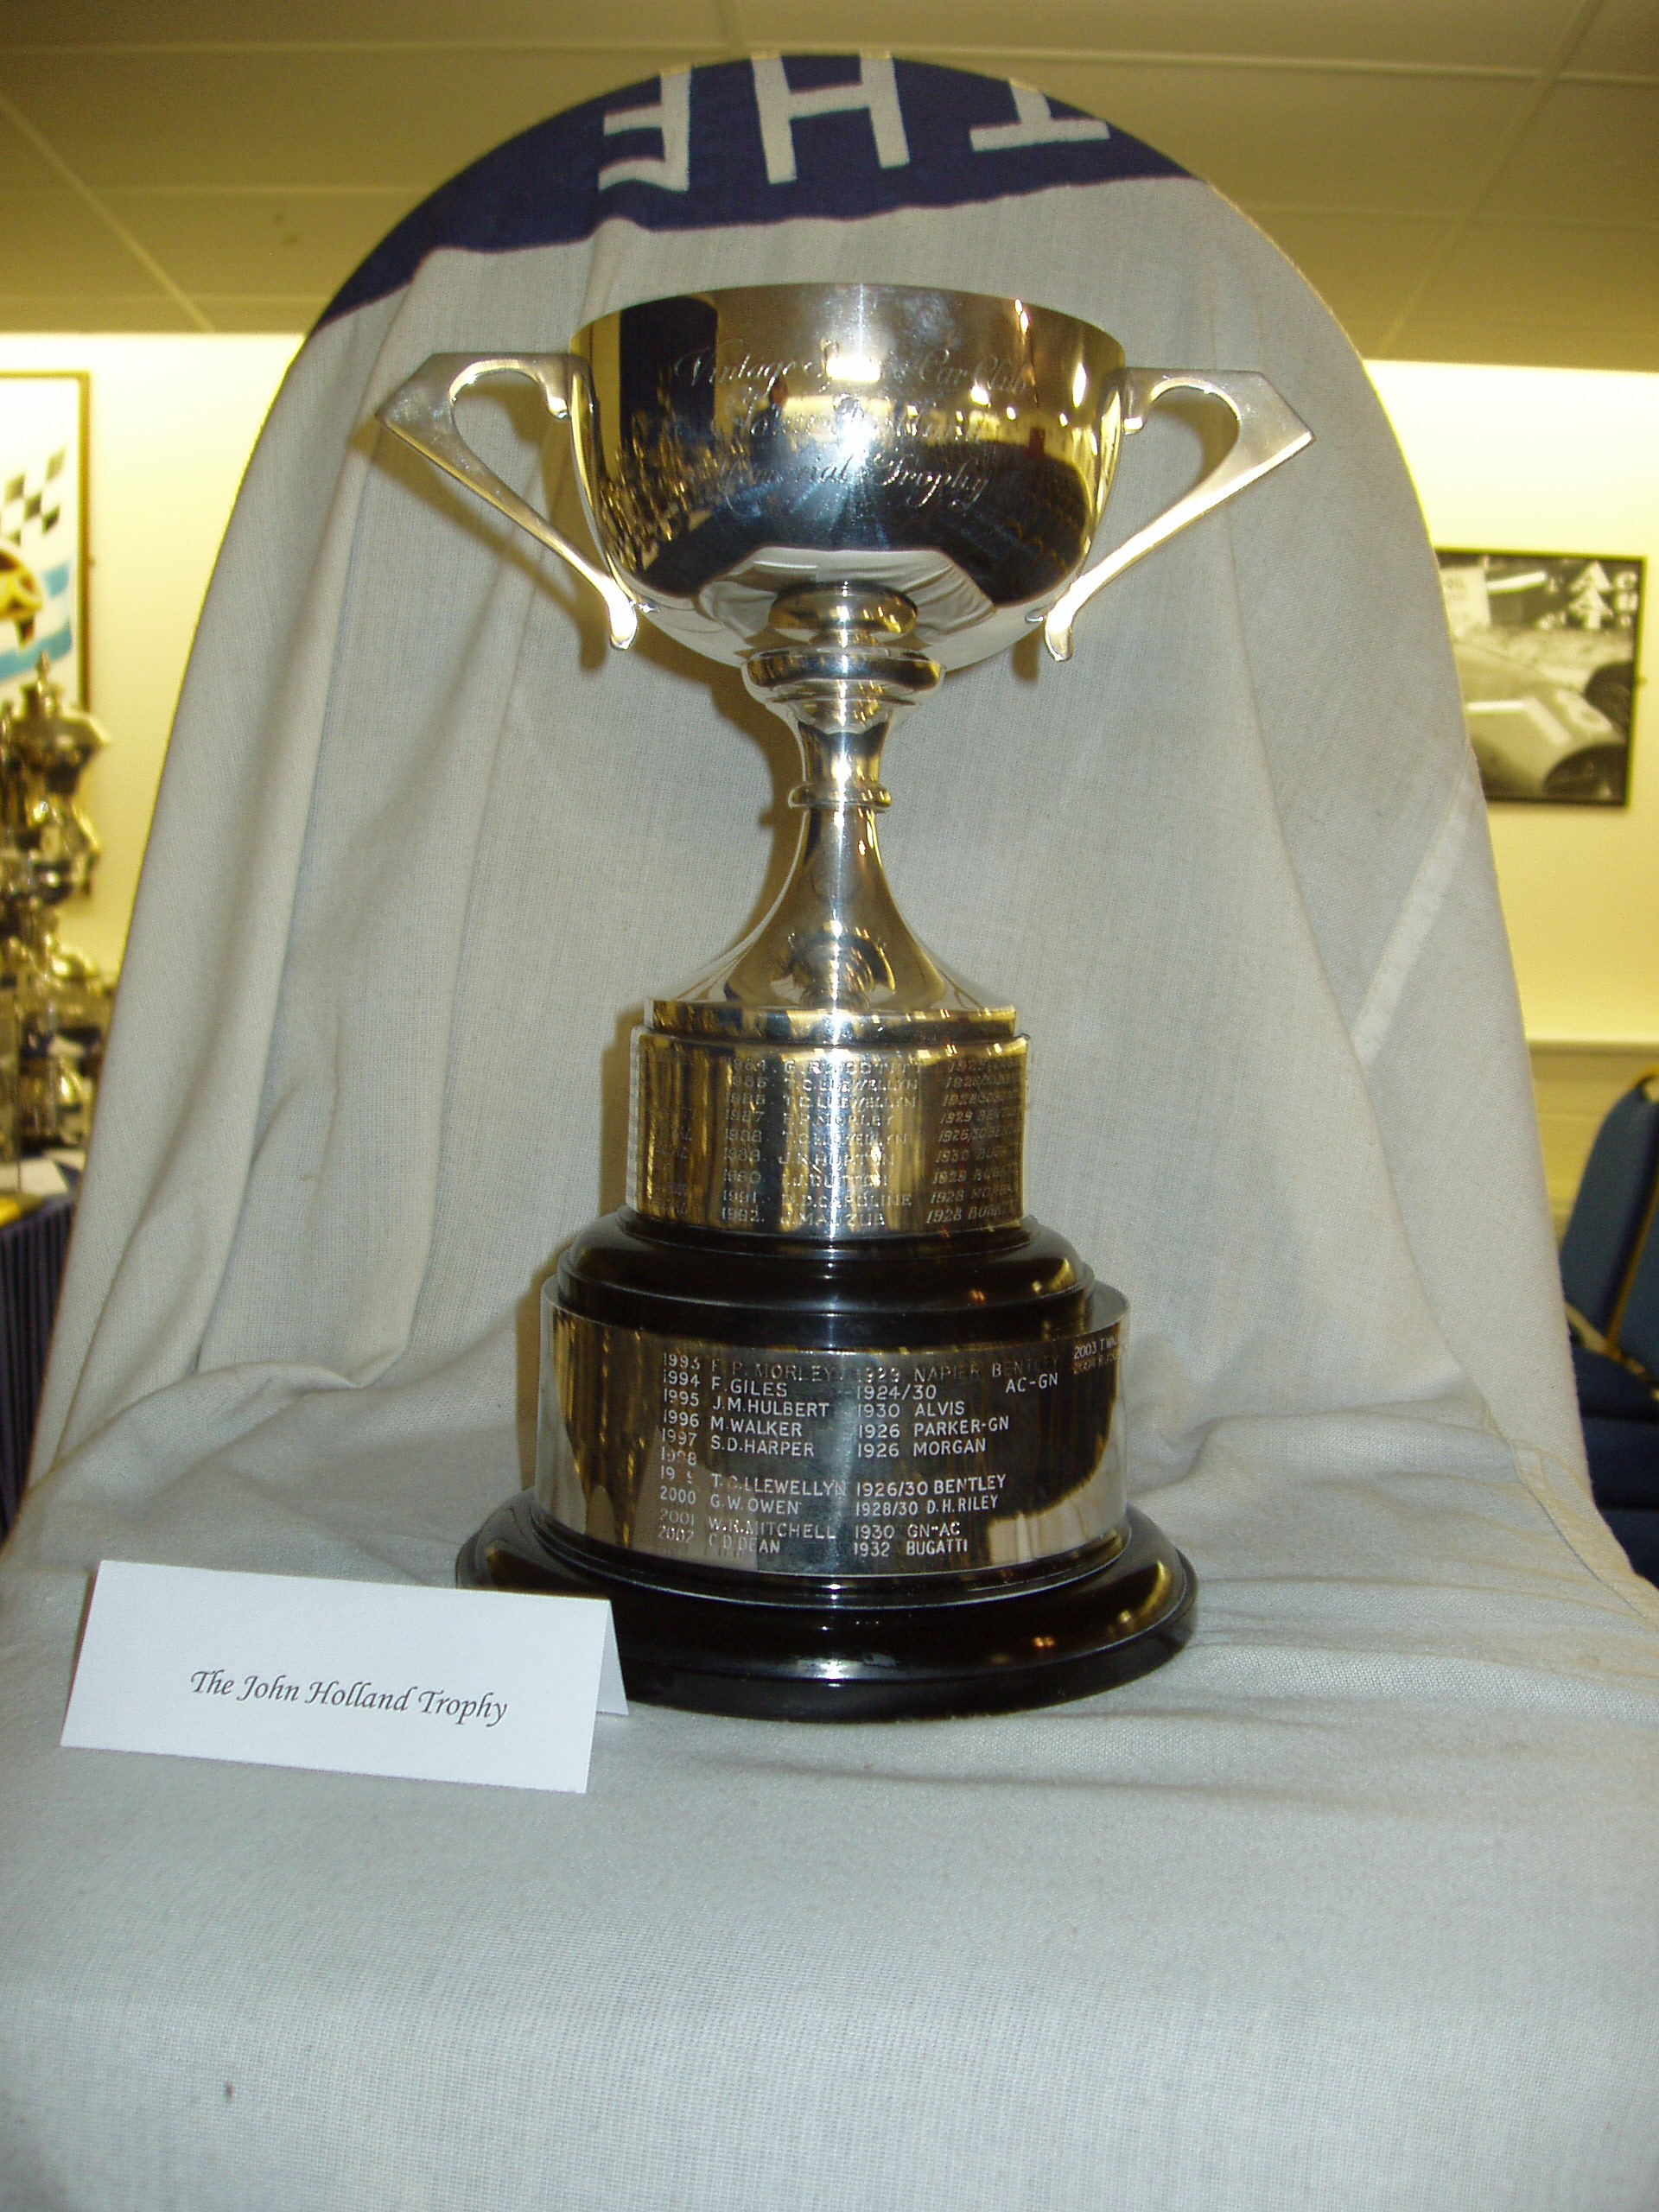 JOHN HOLLAND TROPHY cover